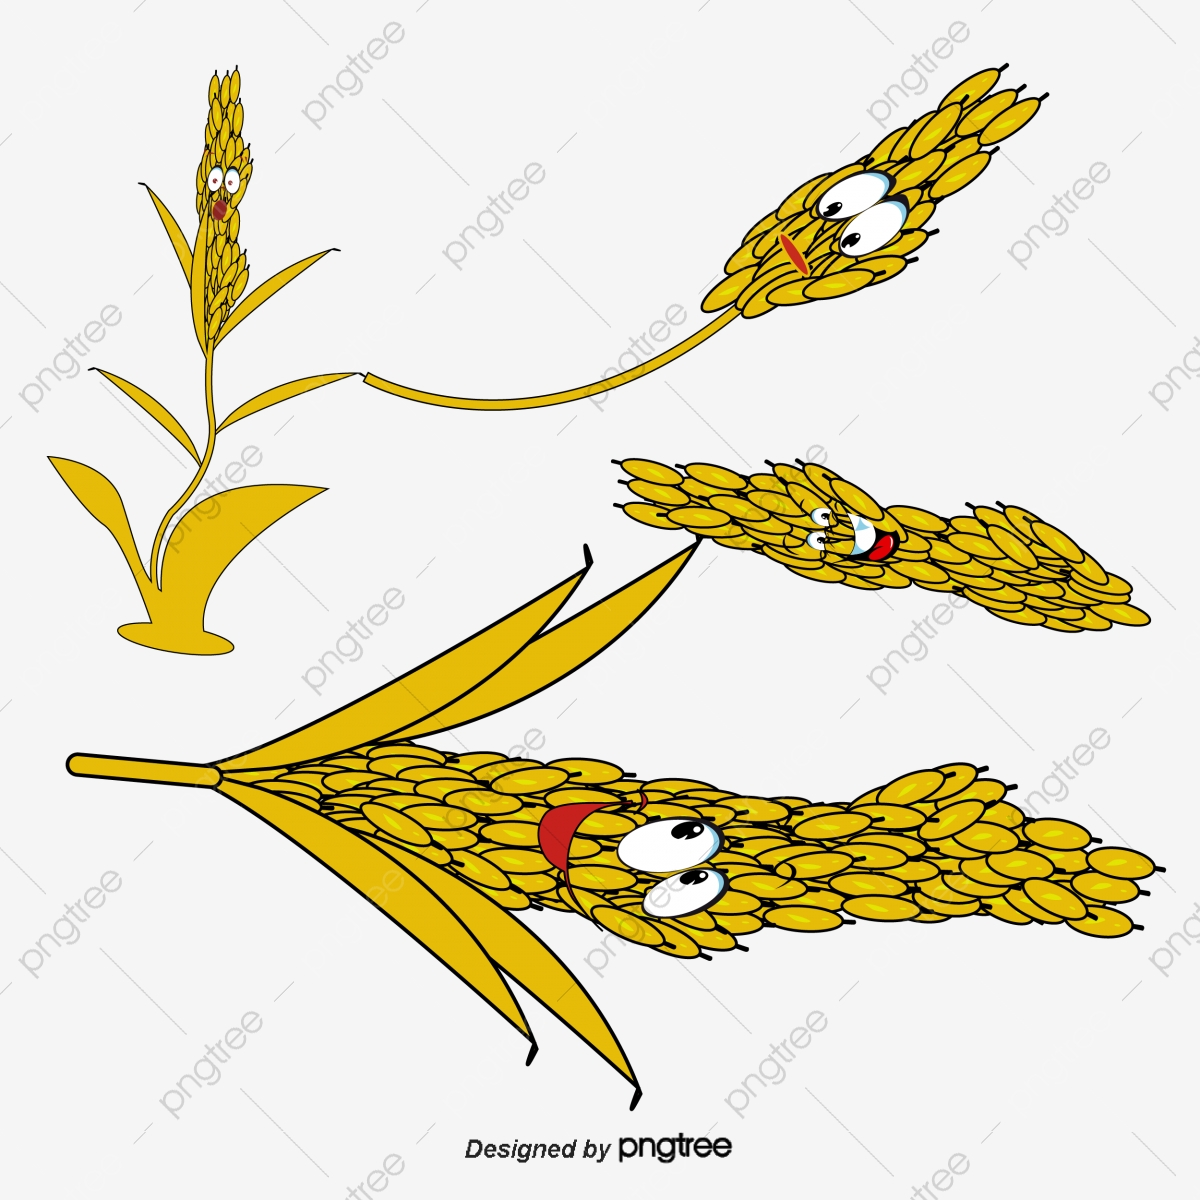 Cartoon Wheat Cartoon Wheat Food Png And Vector With Transparent Background For Free Download